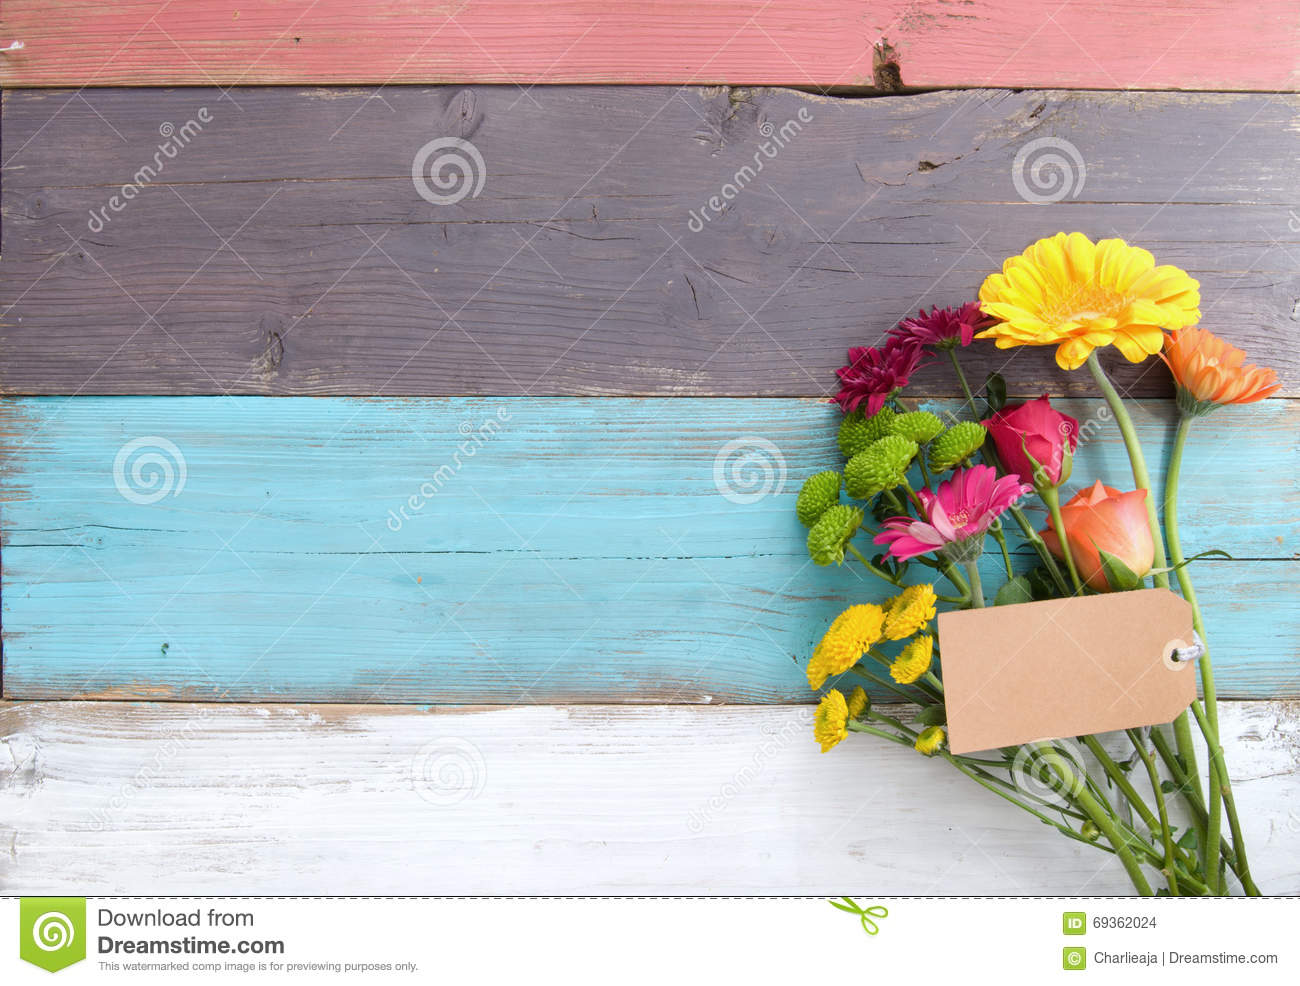 Flower bouquet background stock photo. Image of spring - 69362024